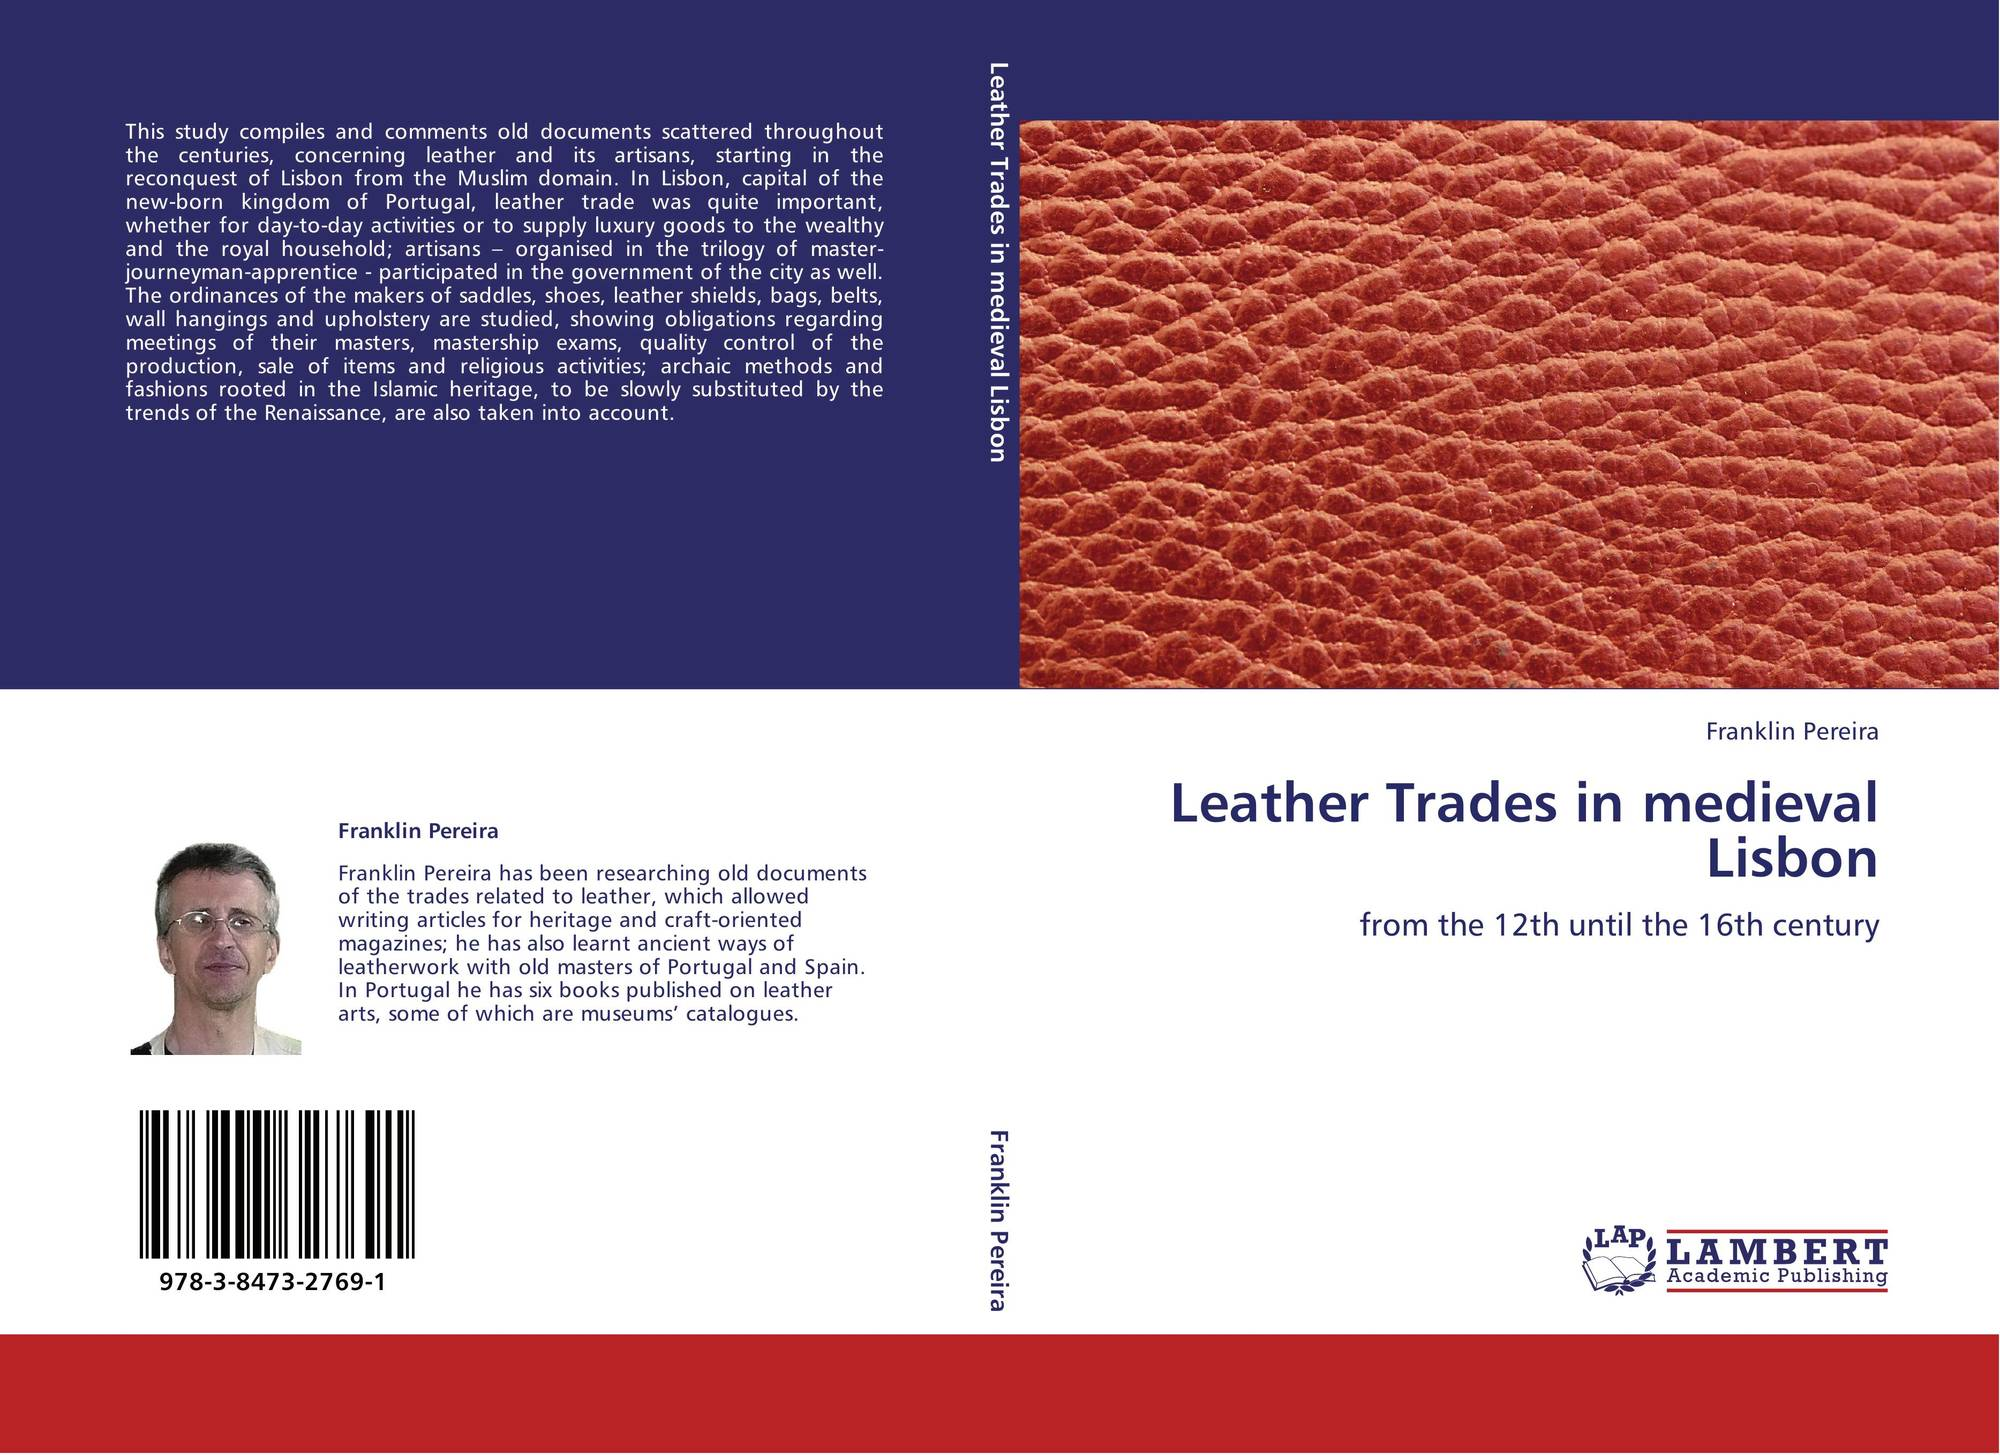 Leather Trades in medieval Lisbon, 978-3-8473-2769-1